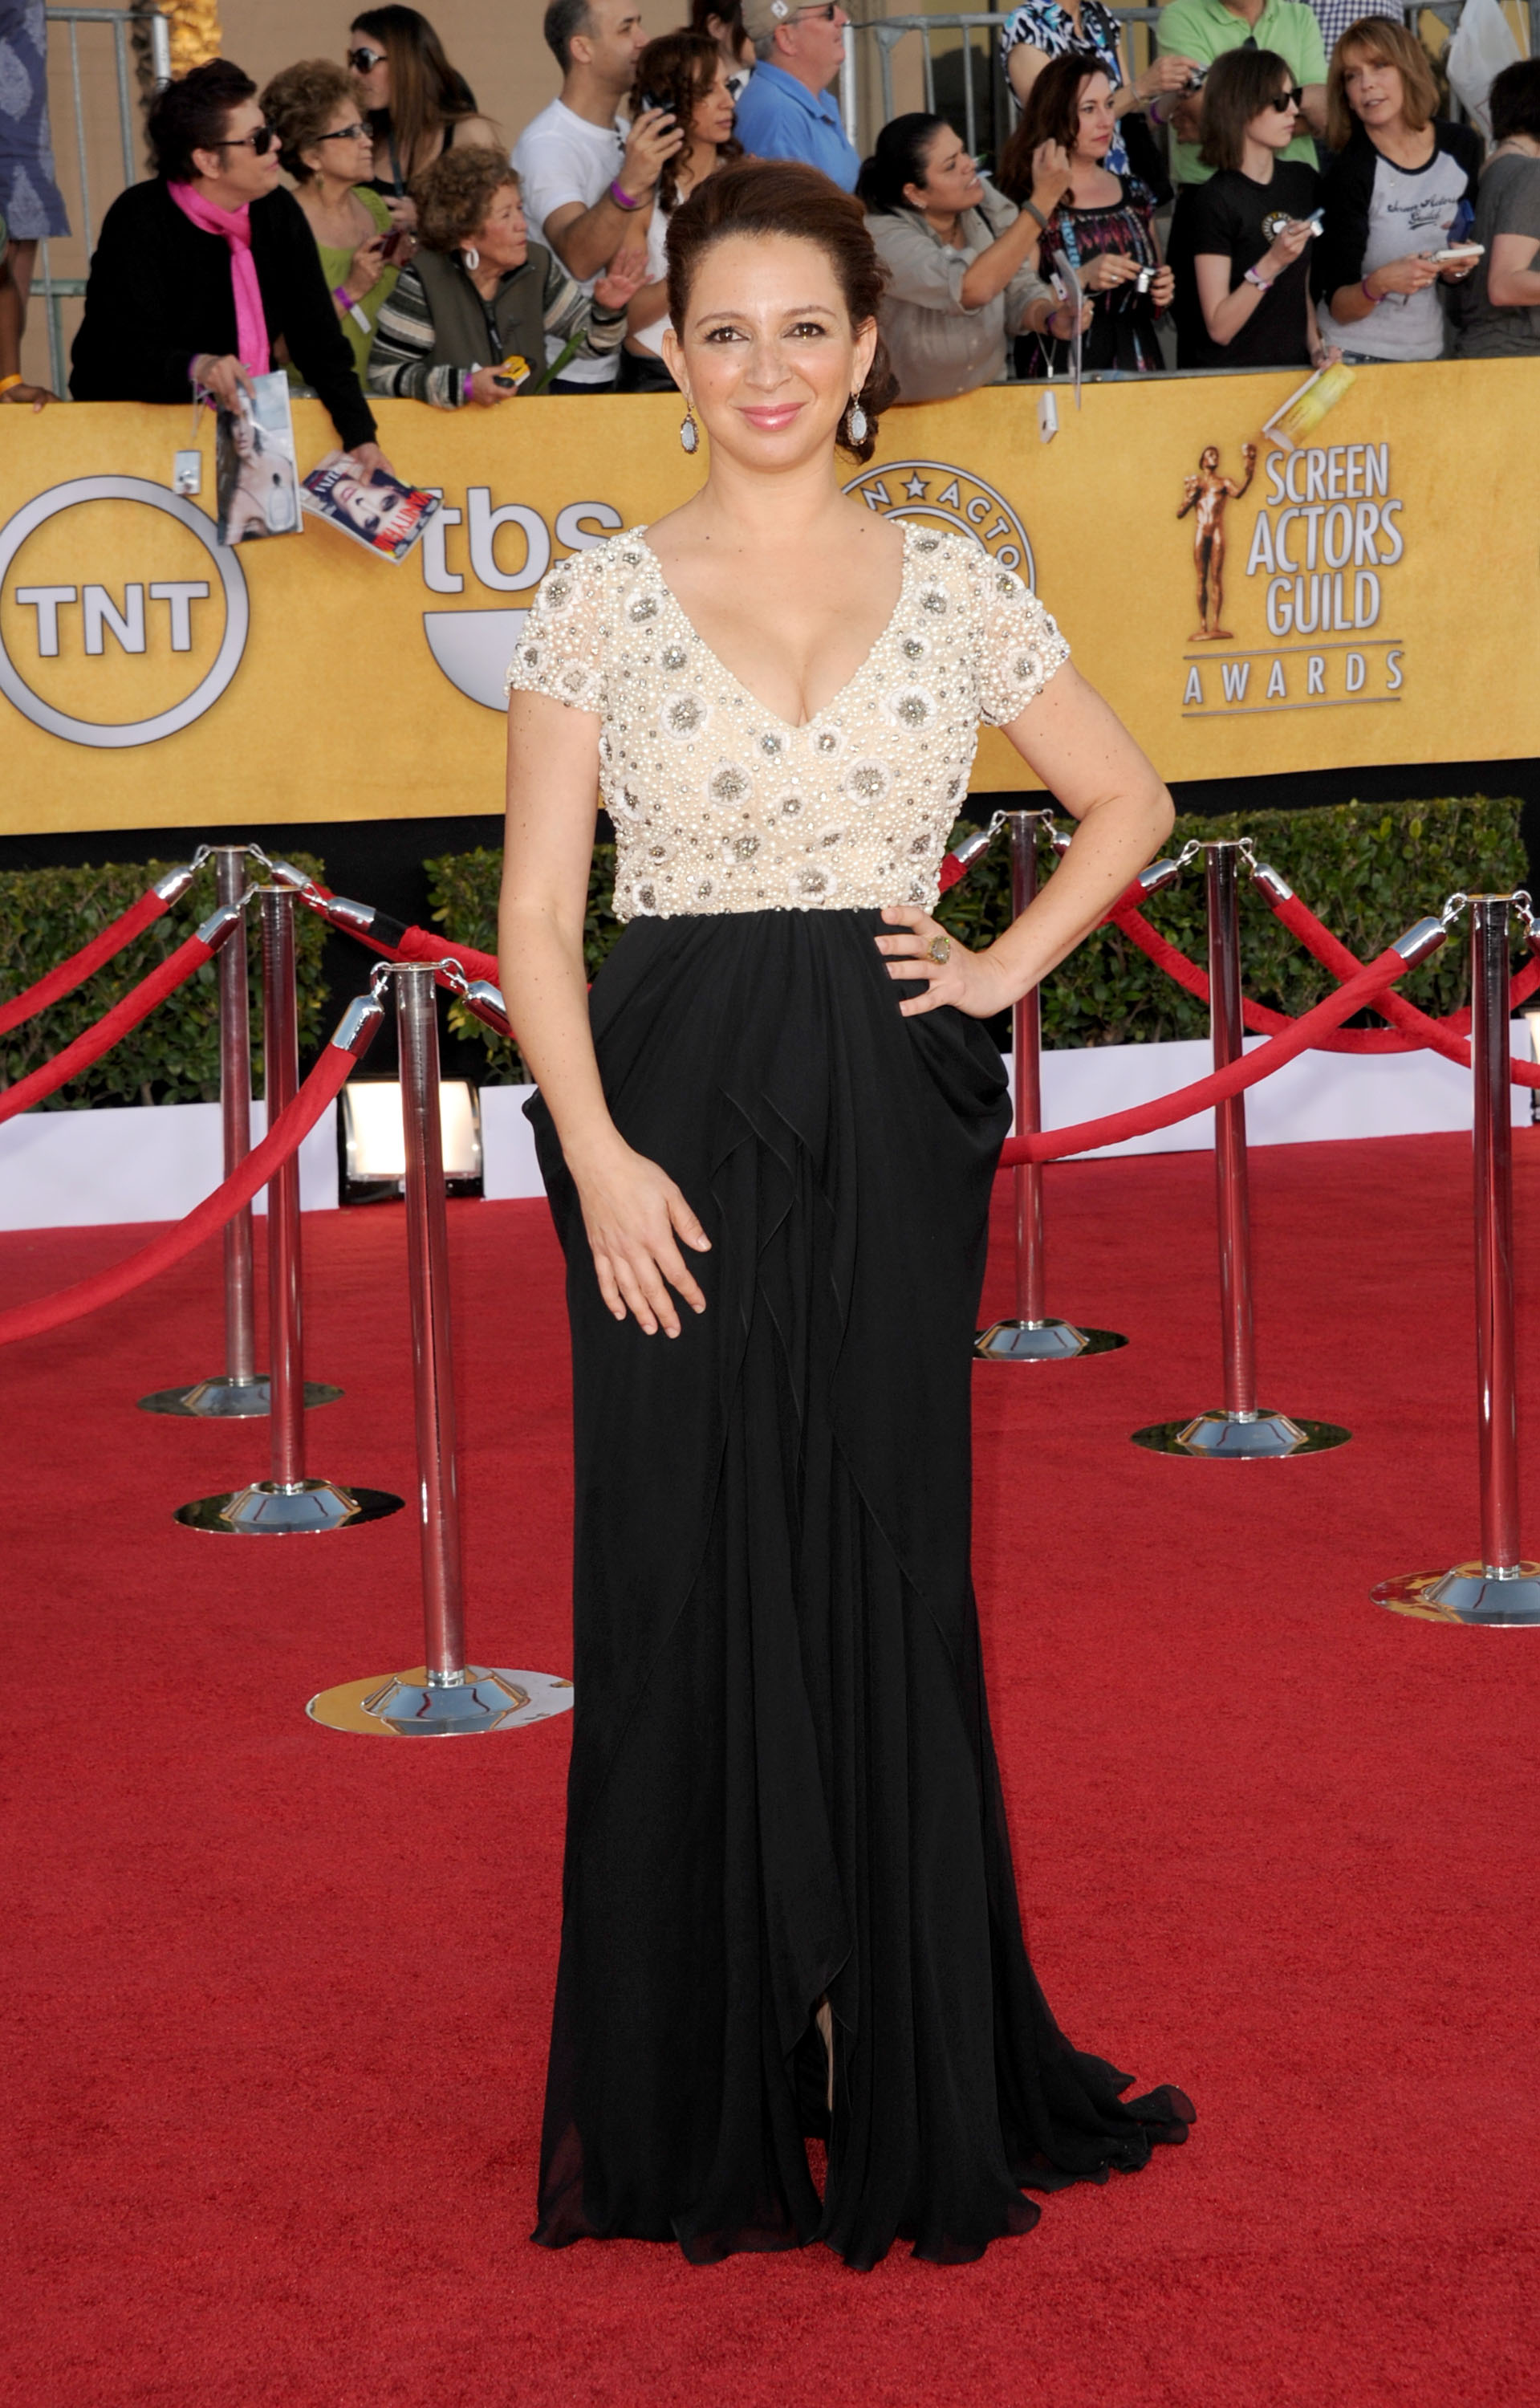 Maya Rudolph at the SAG Awards